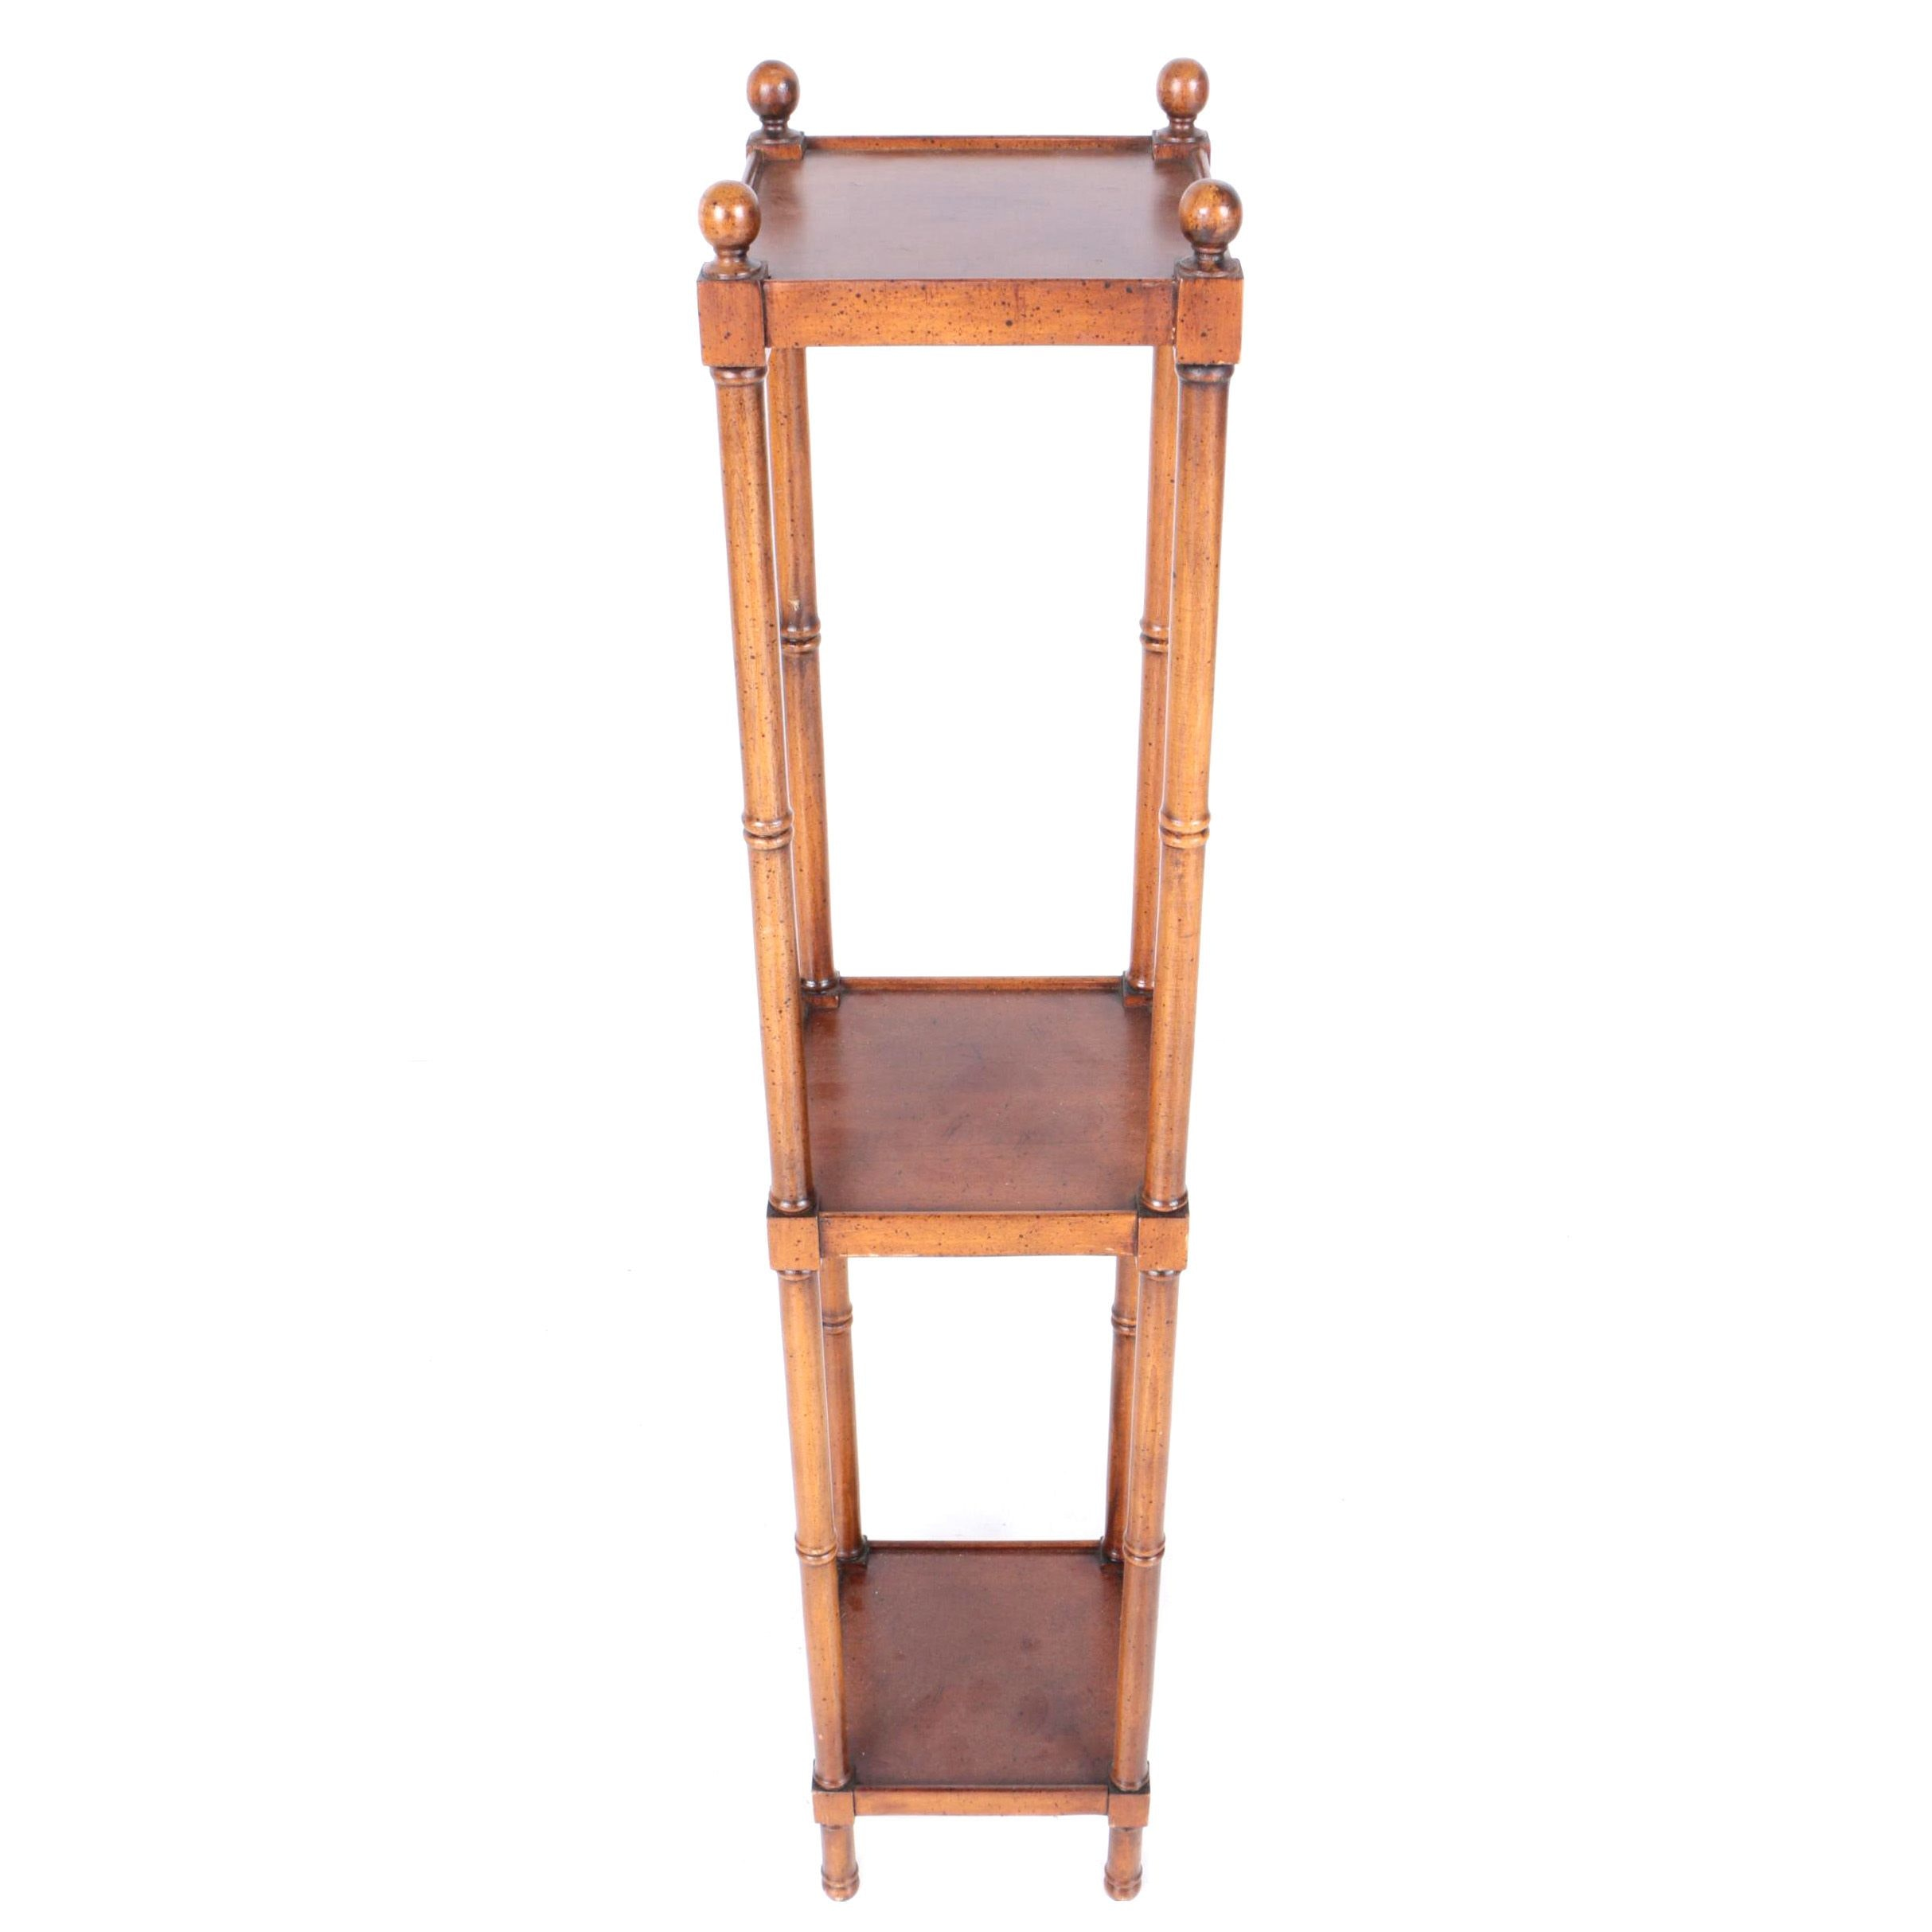 Three Tier Wooden Stand from Brandt